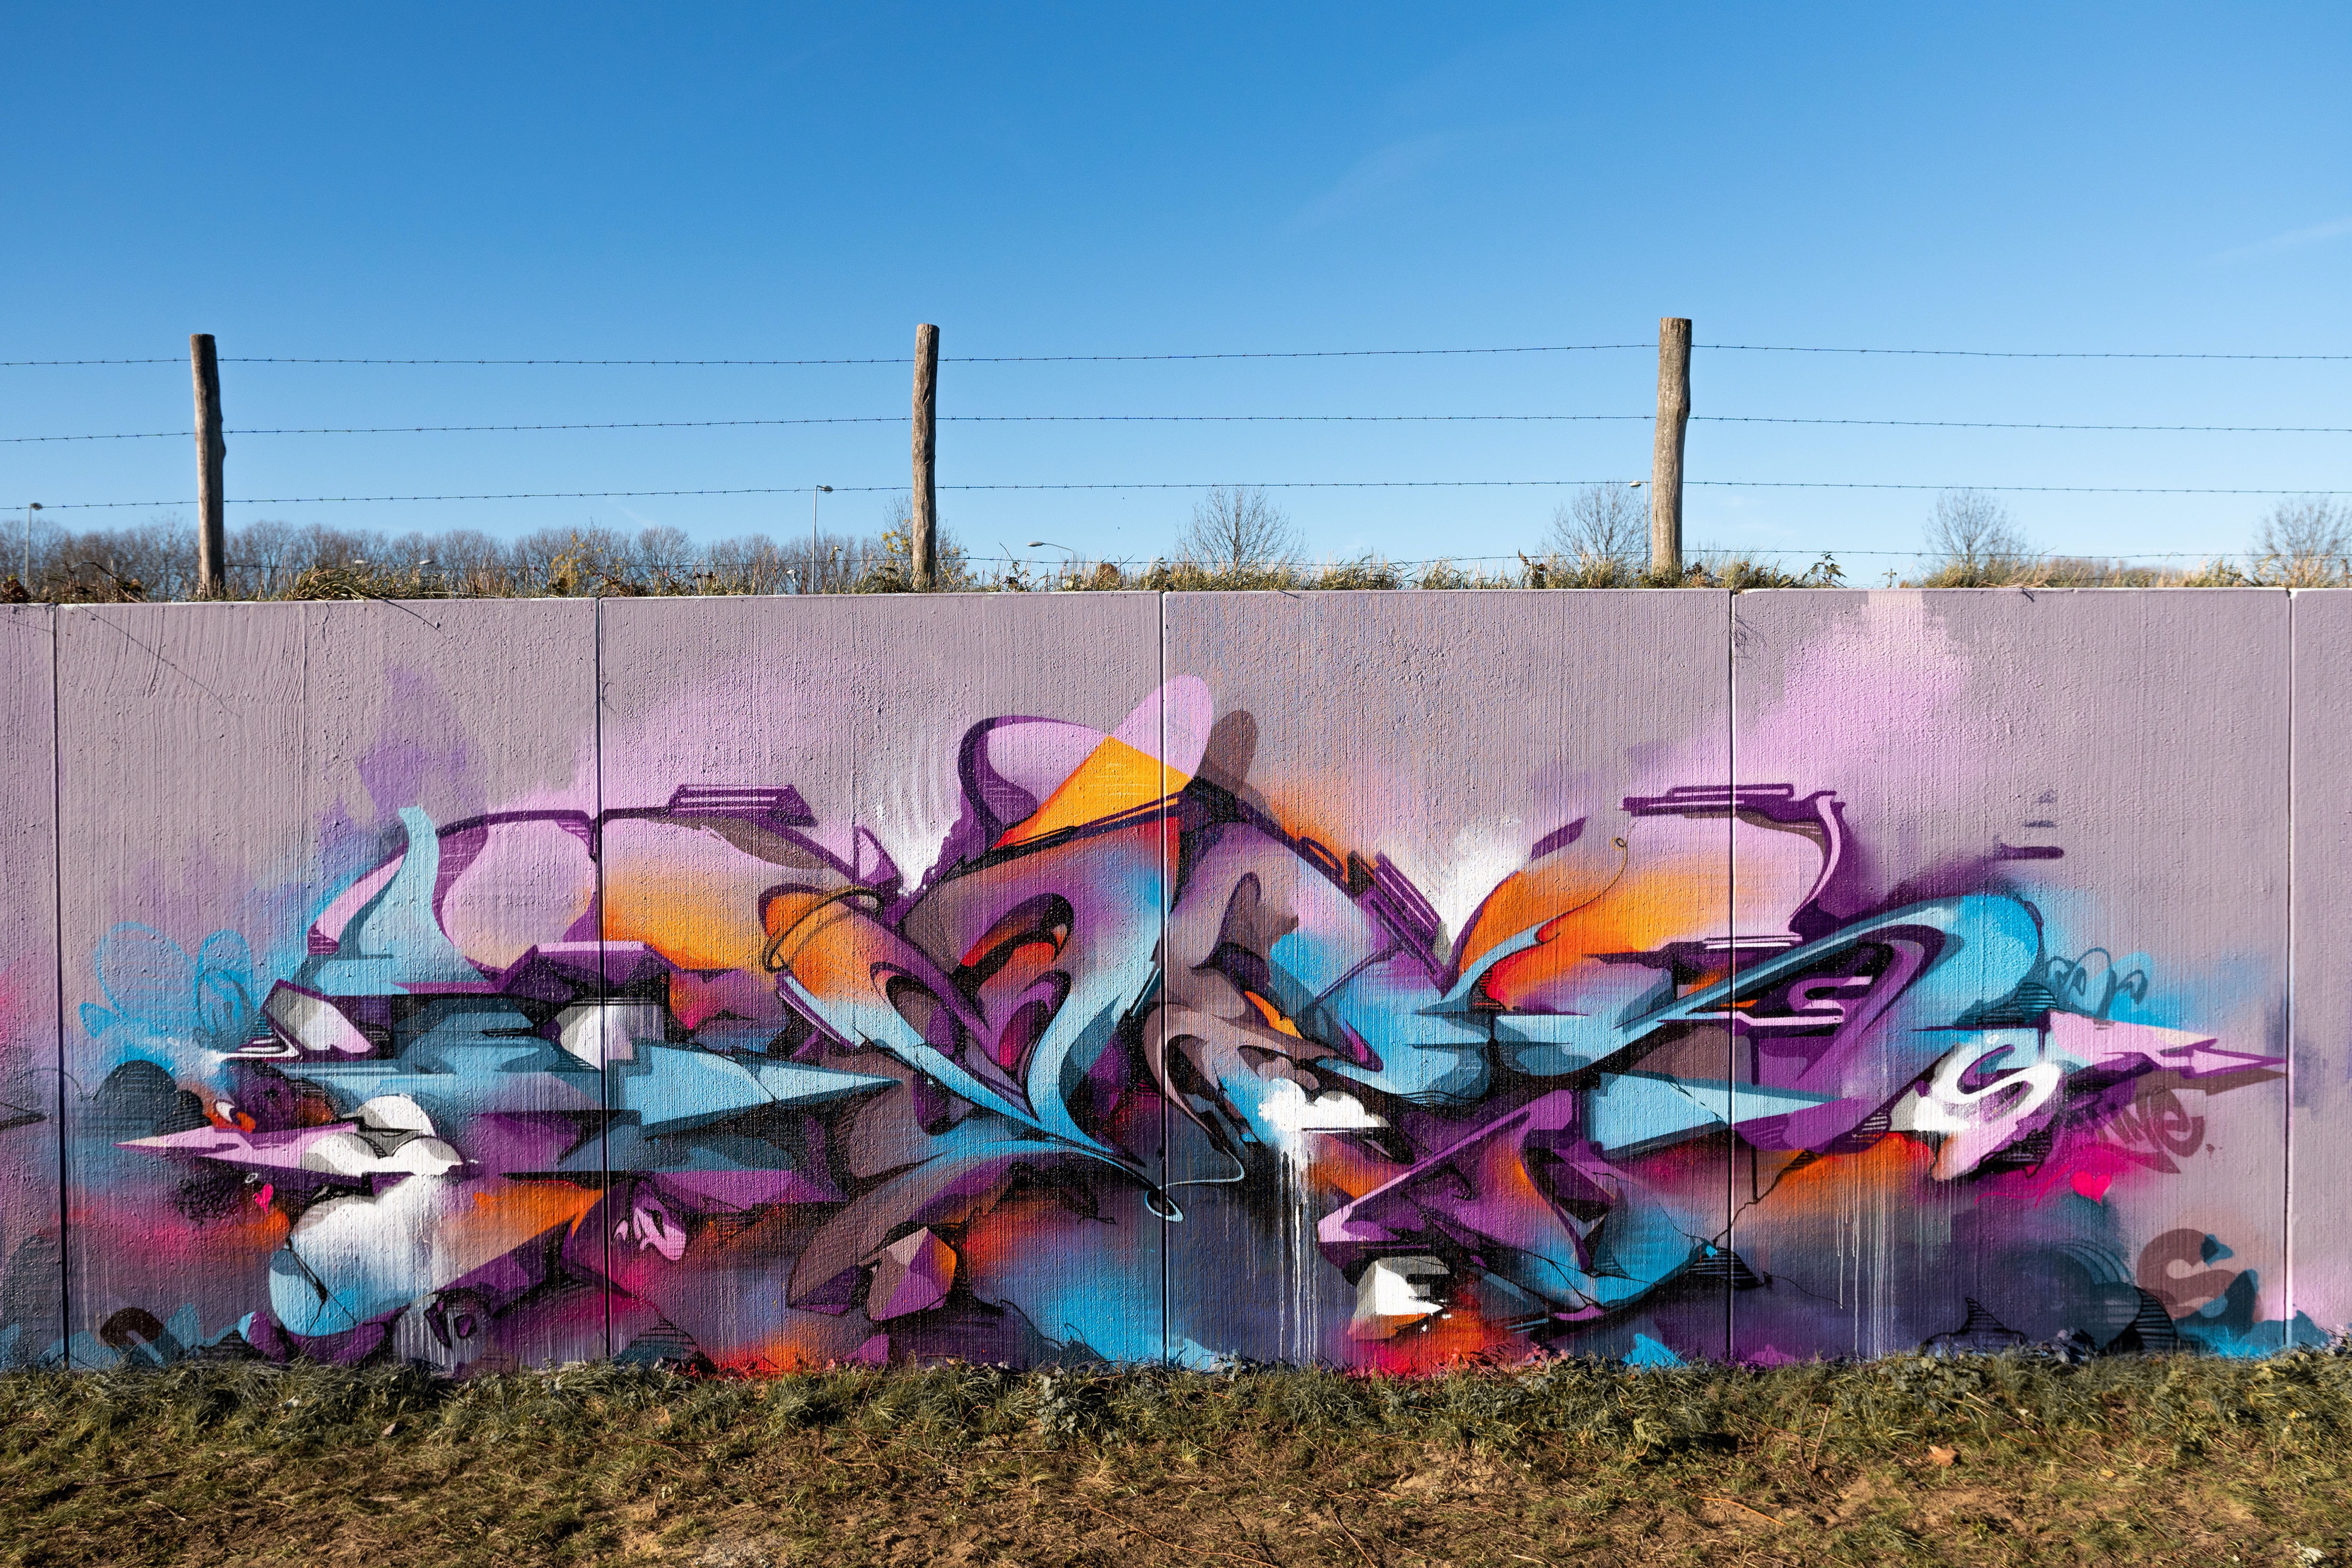 A work by Does - 3 Geleen